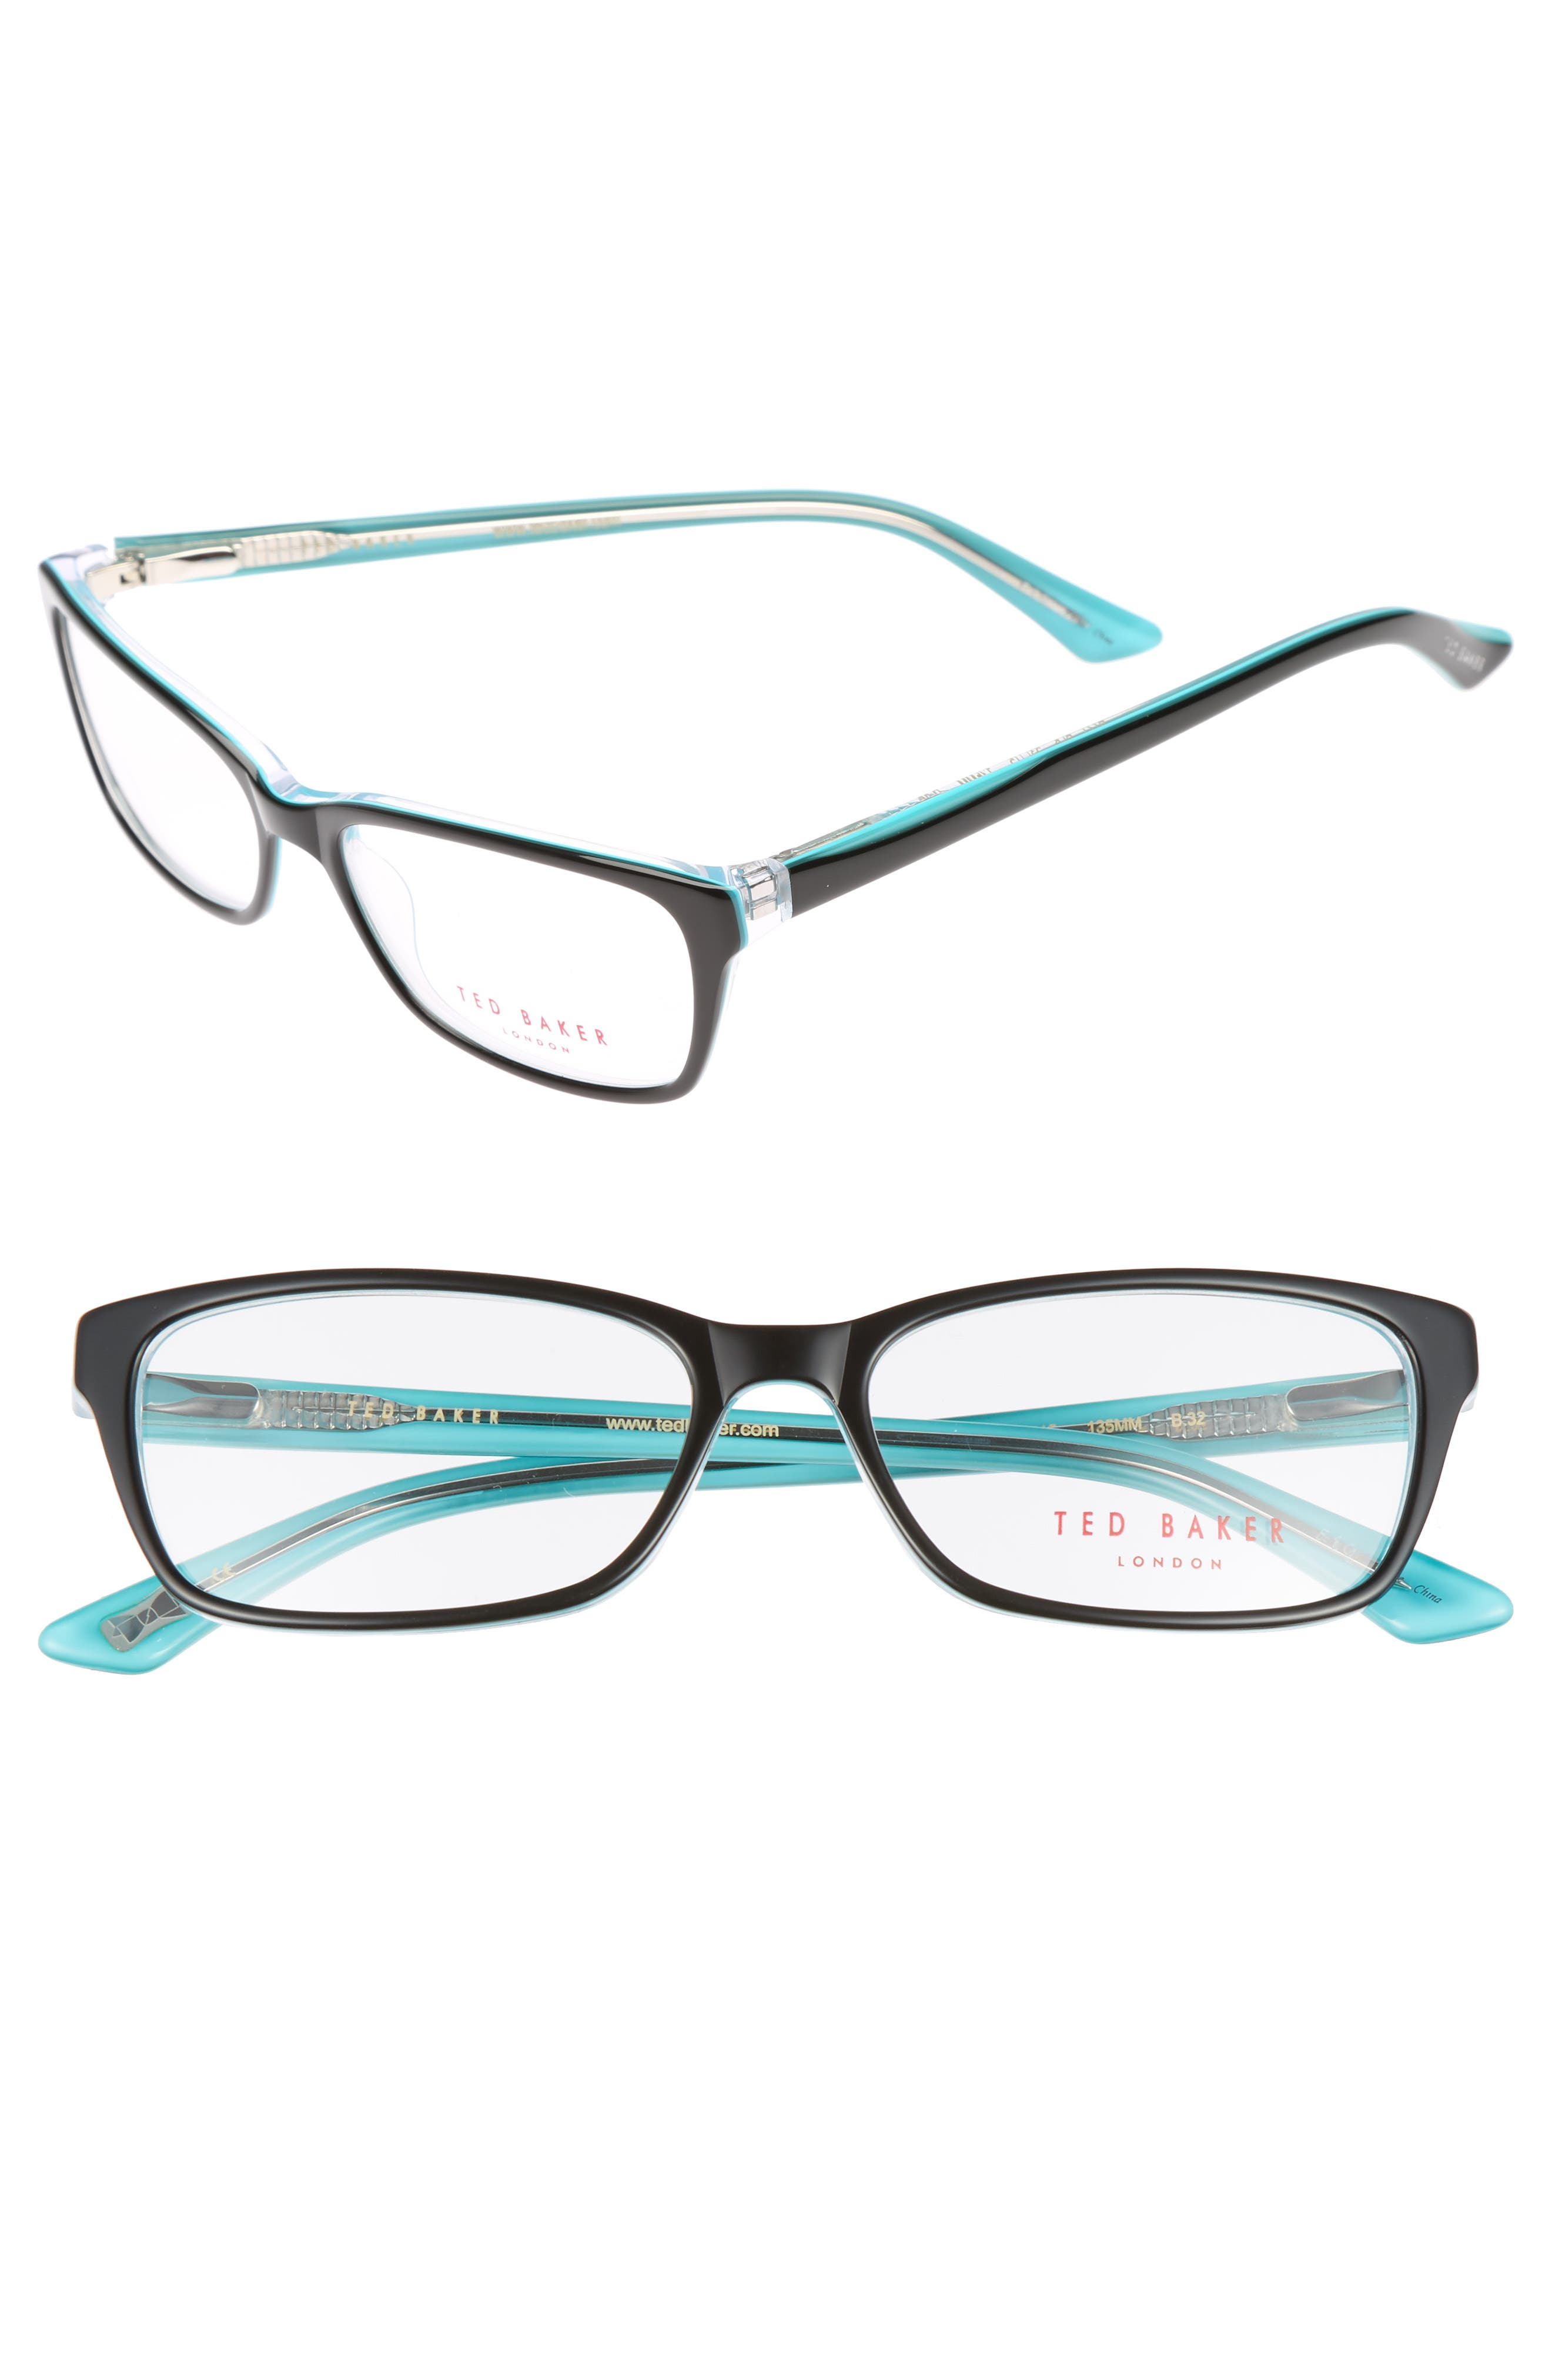 53mm Optical Glasses,                         Main,                         color, 001